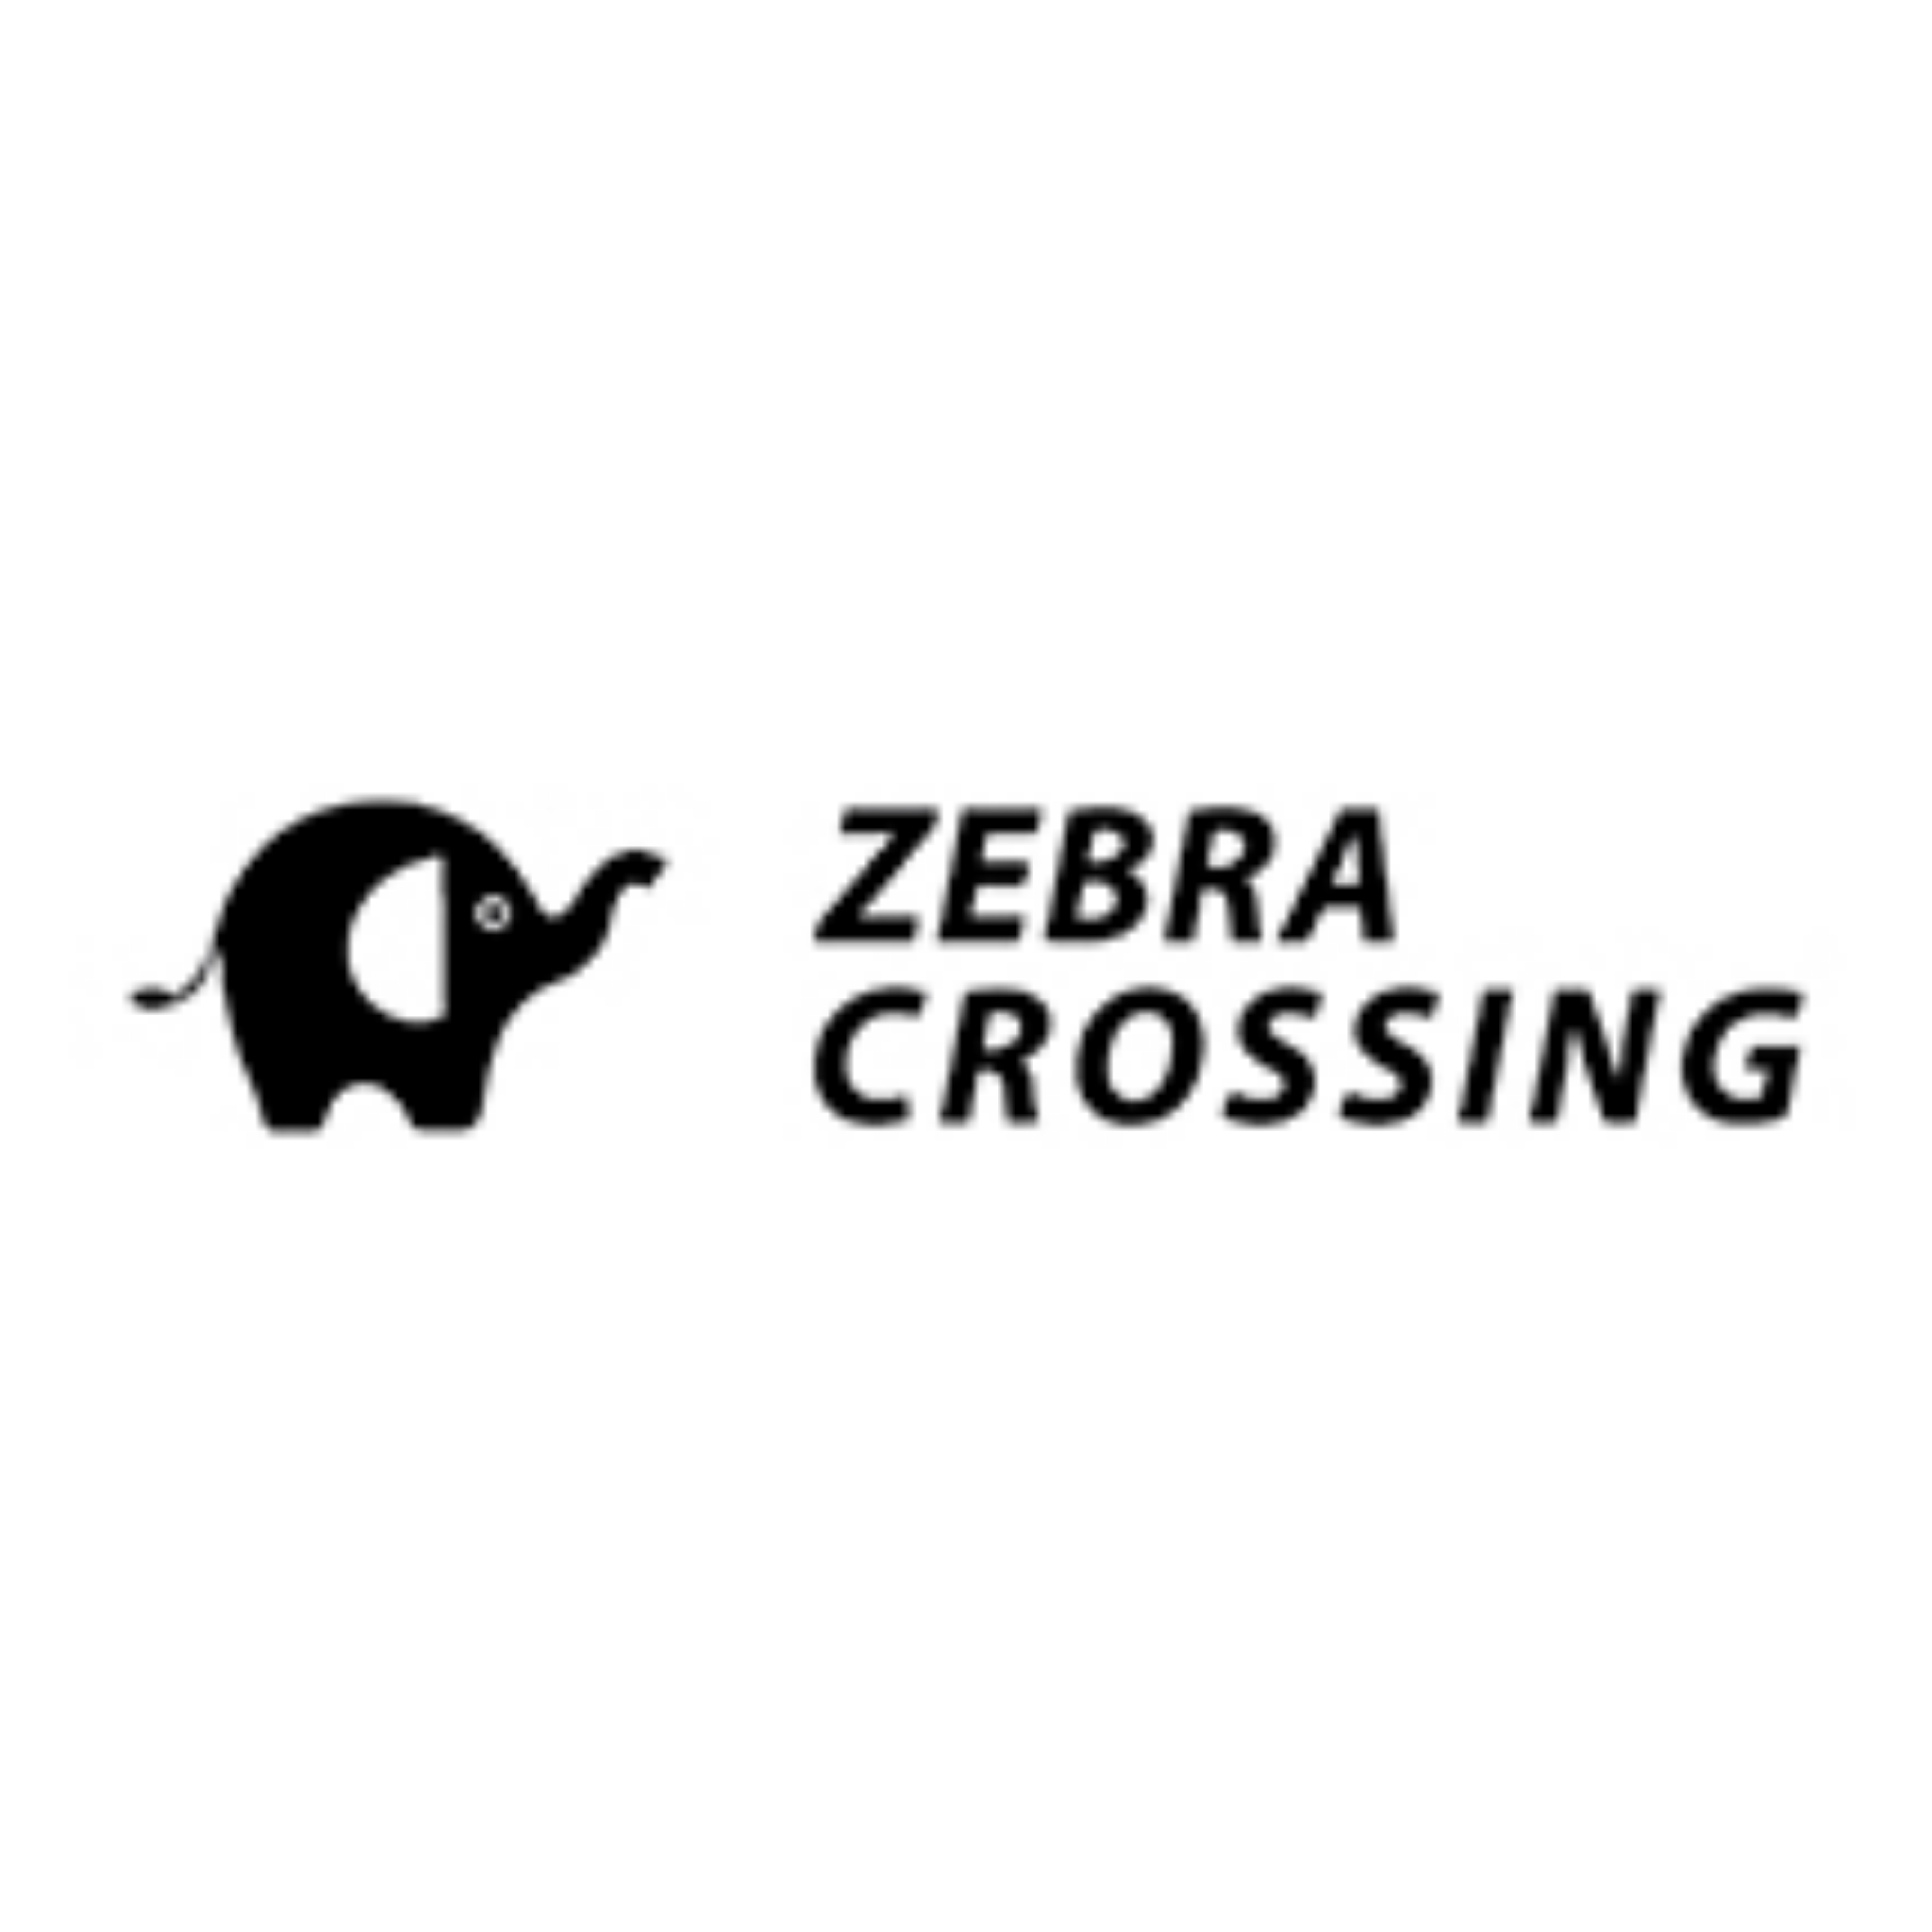 Zebra Crossing logo